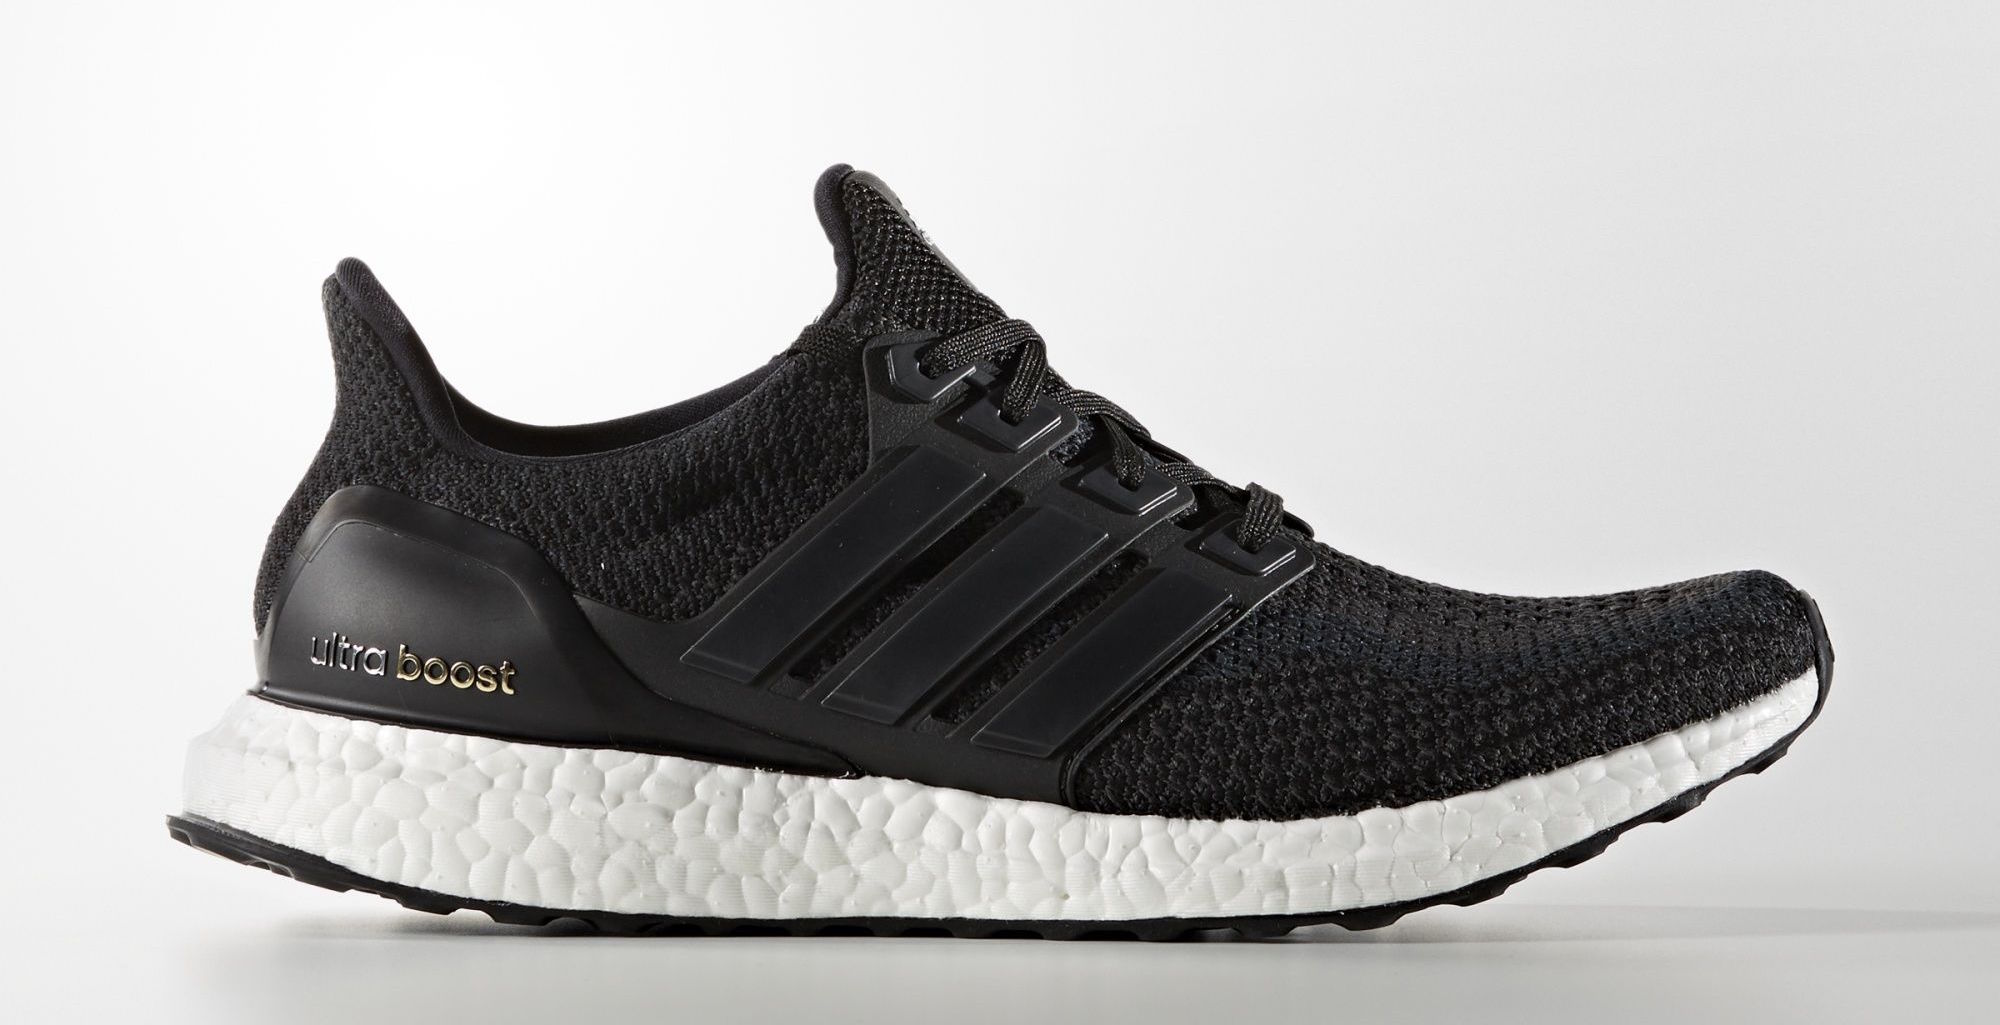 fd73fec21c979 Adidas Ultra Boost Core Black v2 Release Links - Kicks Links